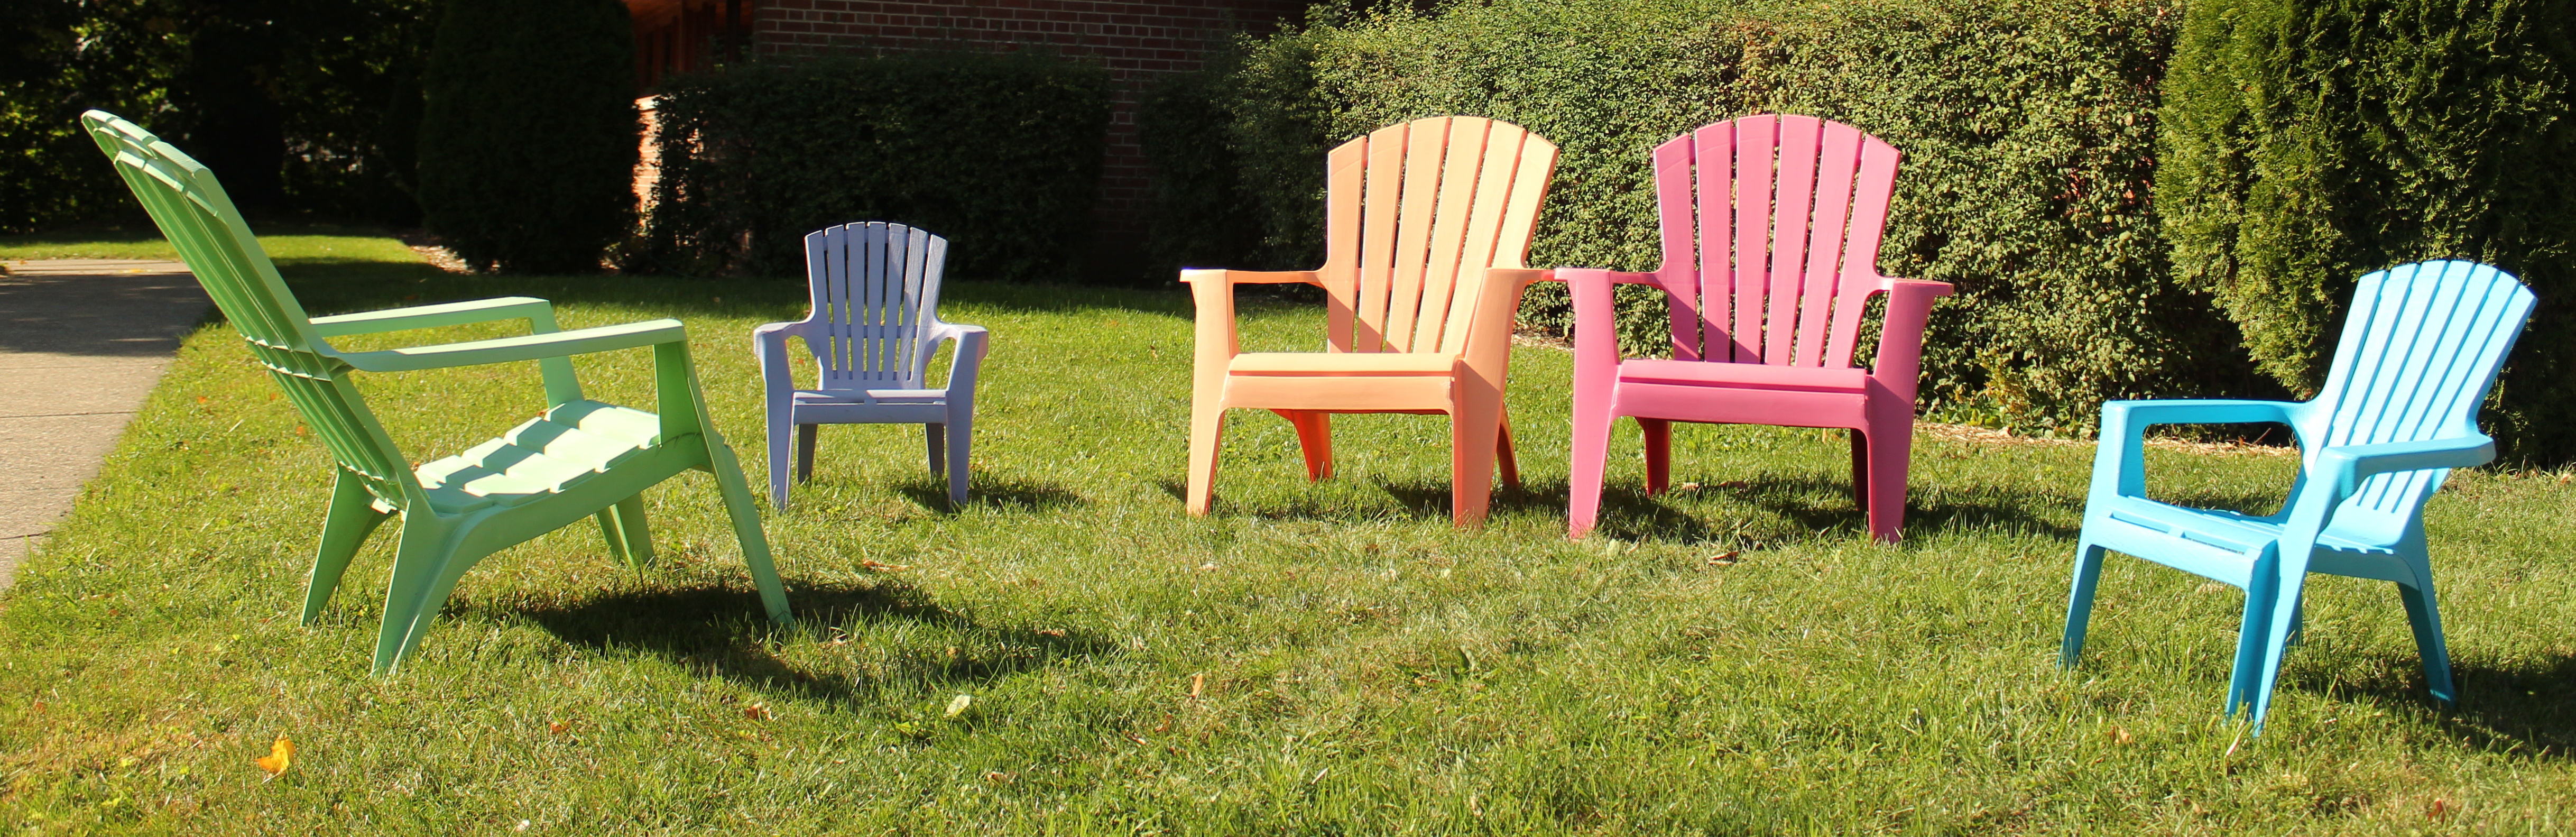 Colored Adirondack Chairs Bright Pastel Colored Adirondack Chairs In Front Of